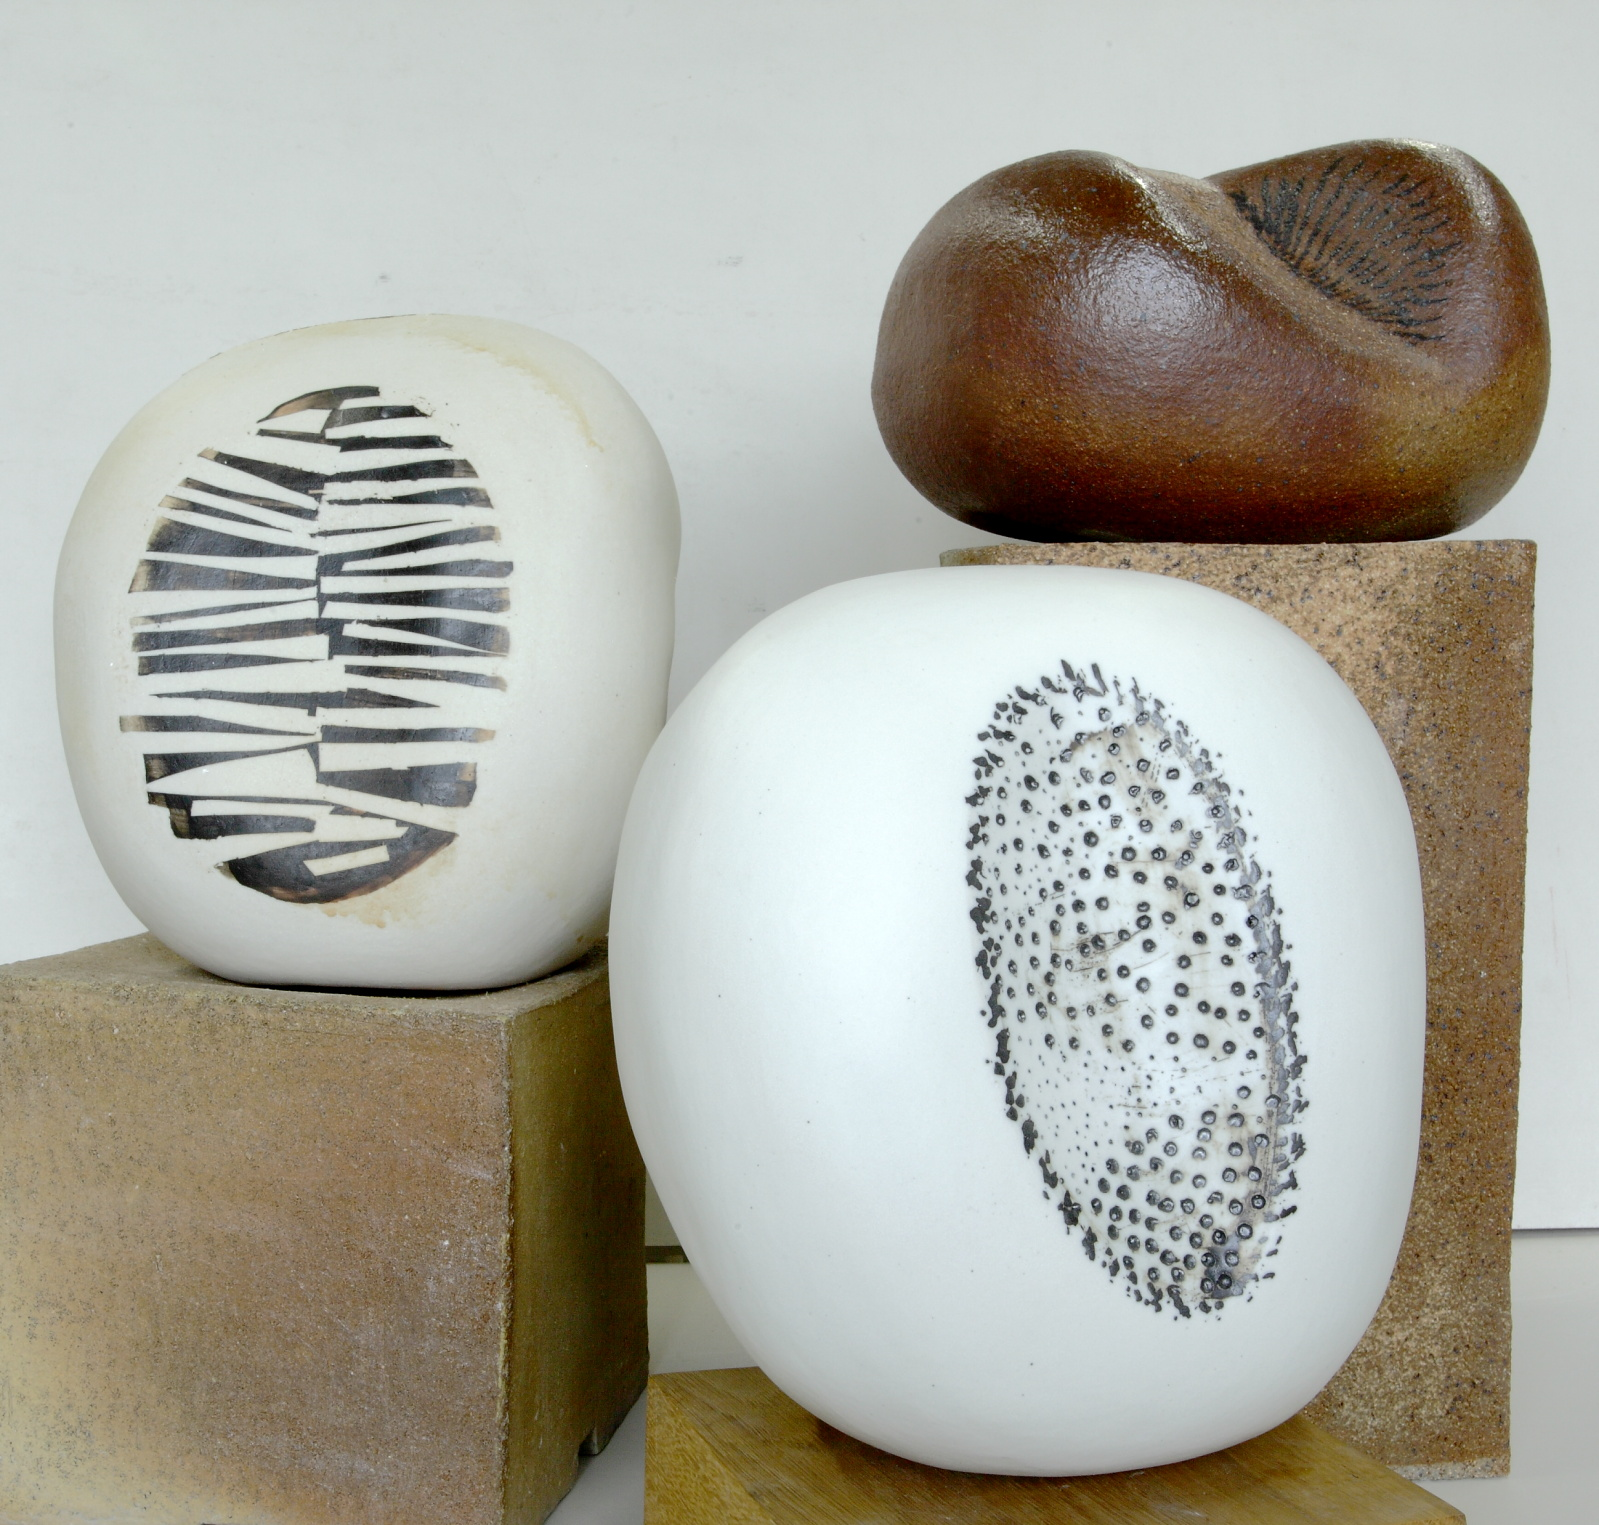 Pots by Hanne Westergaard for thee Urban Joy exhibition at Yorkshire Artspace Sheffield